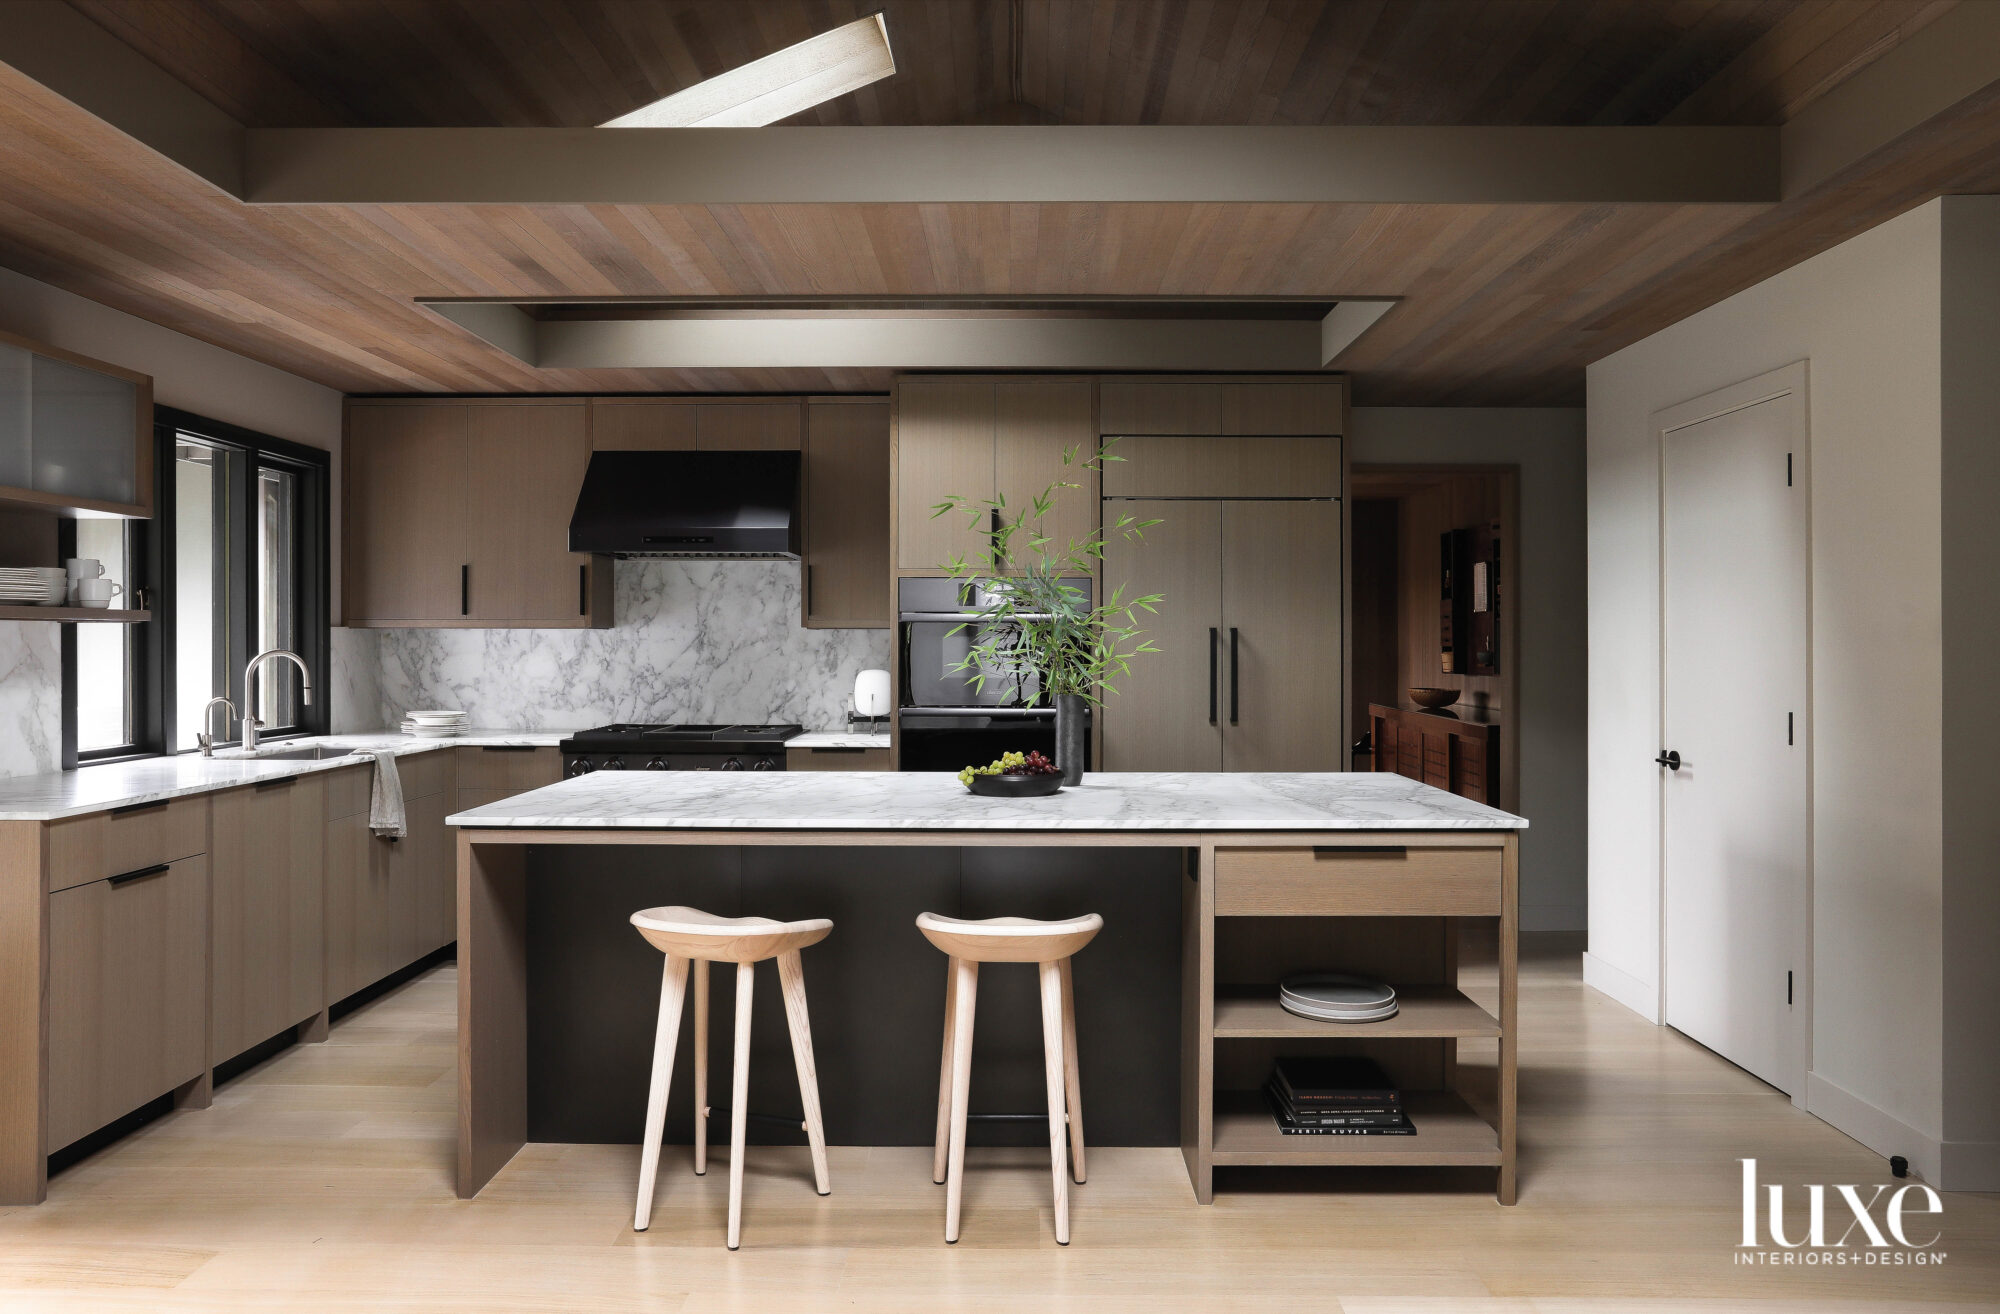 Kitchen island with two barstools